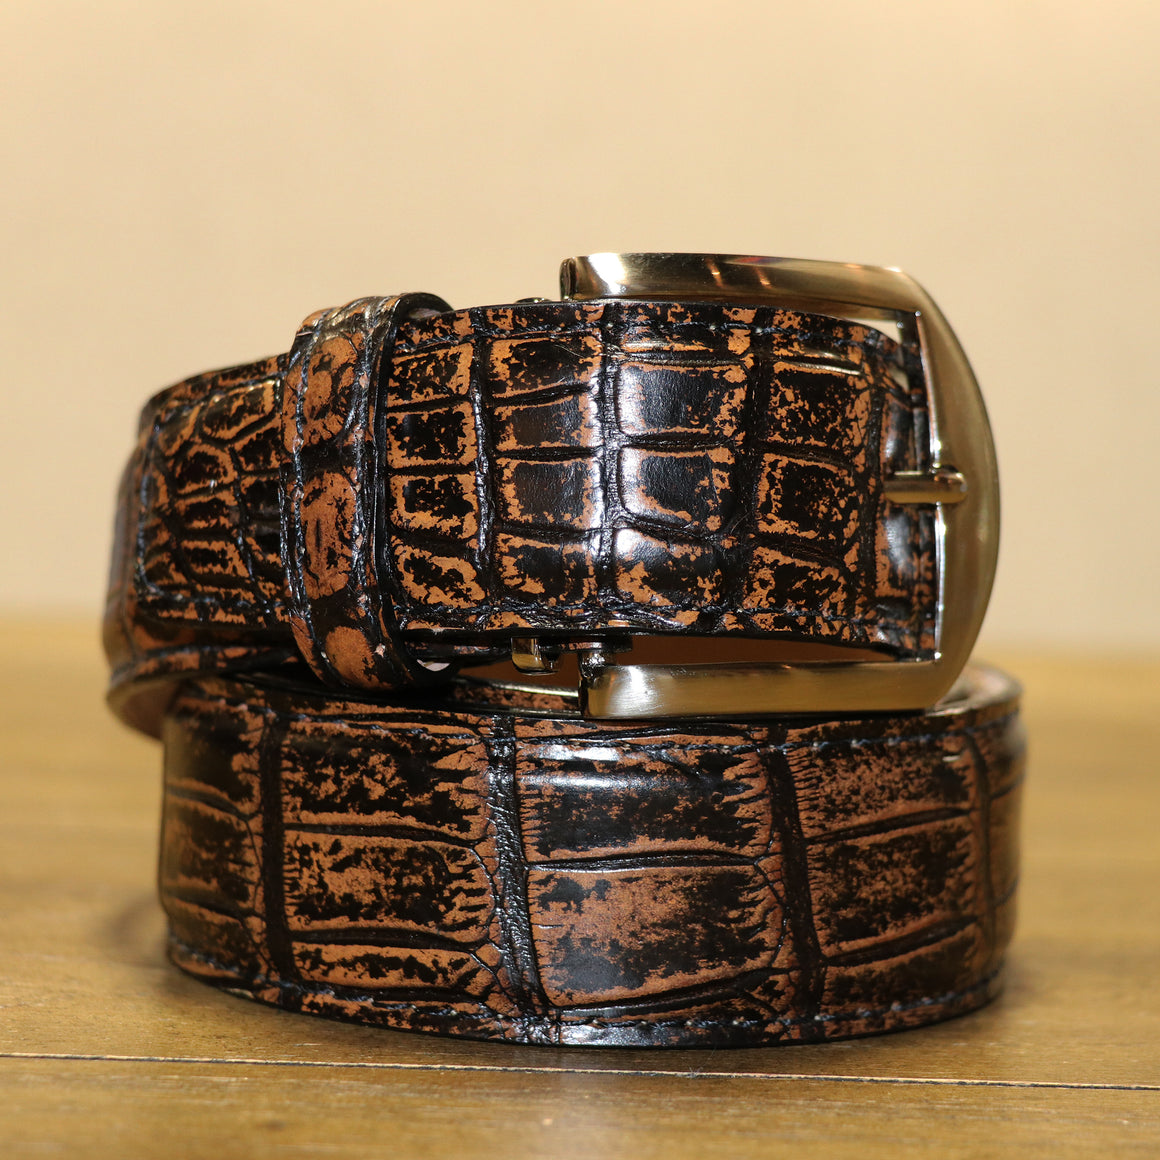 Two Tone Nile Crocodile Belt - Vintage Tan